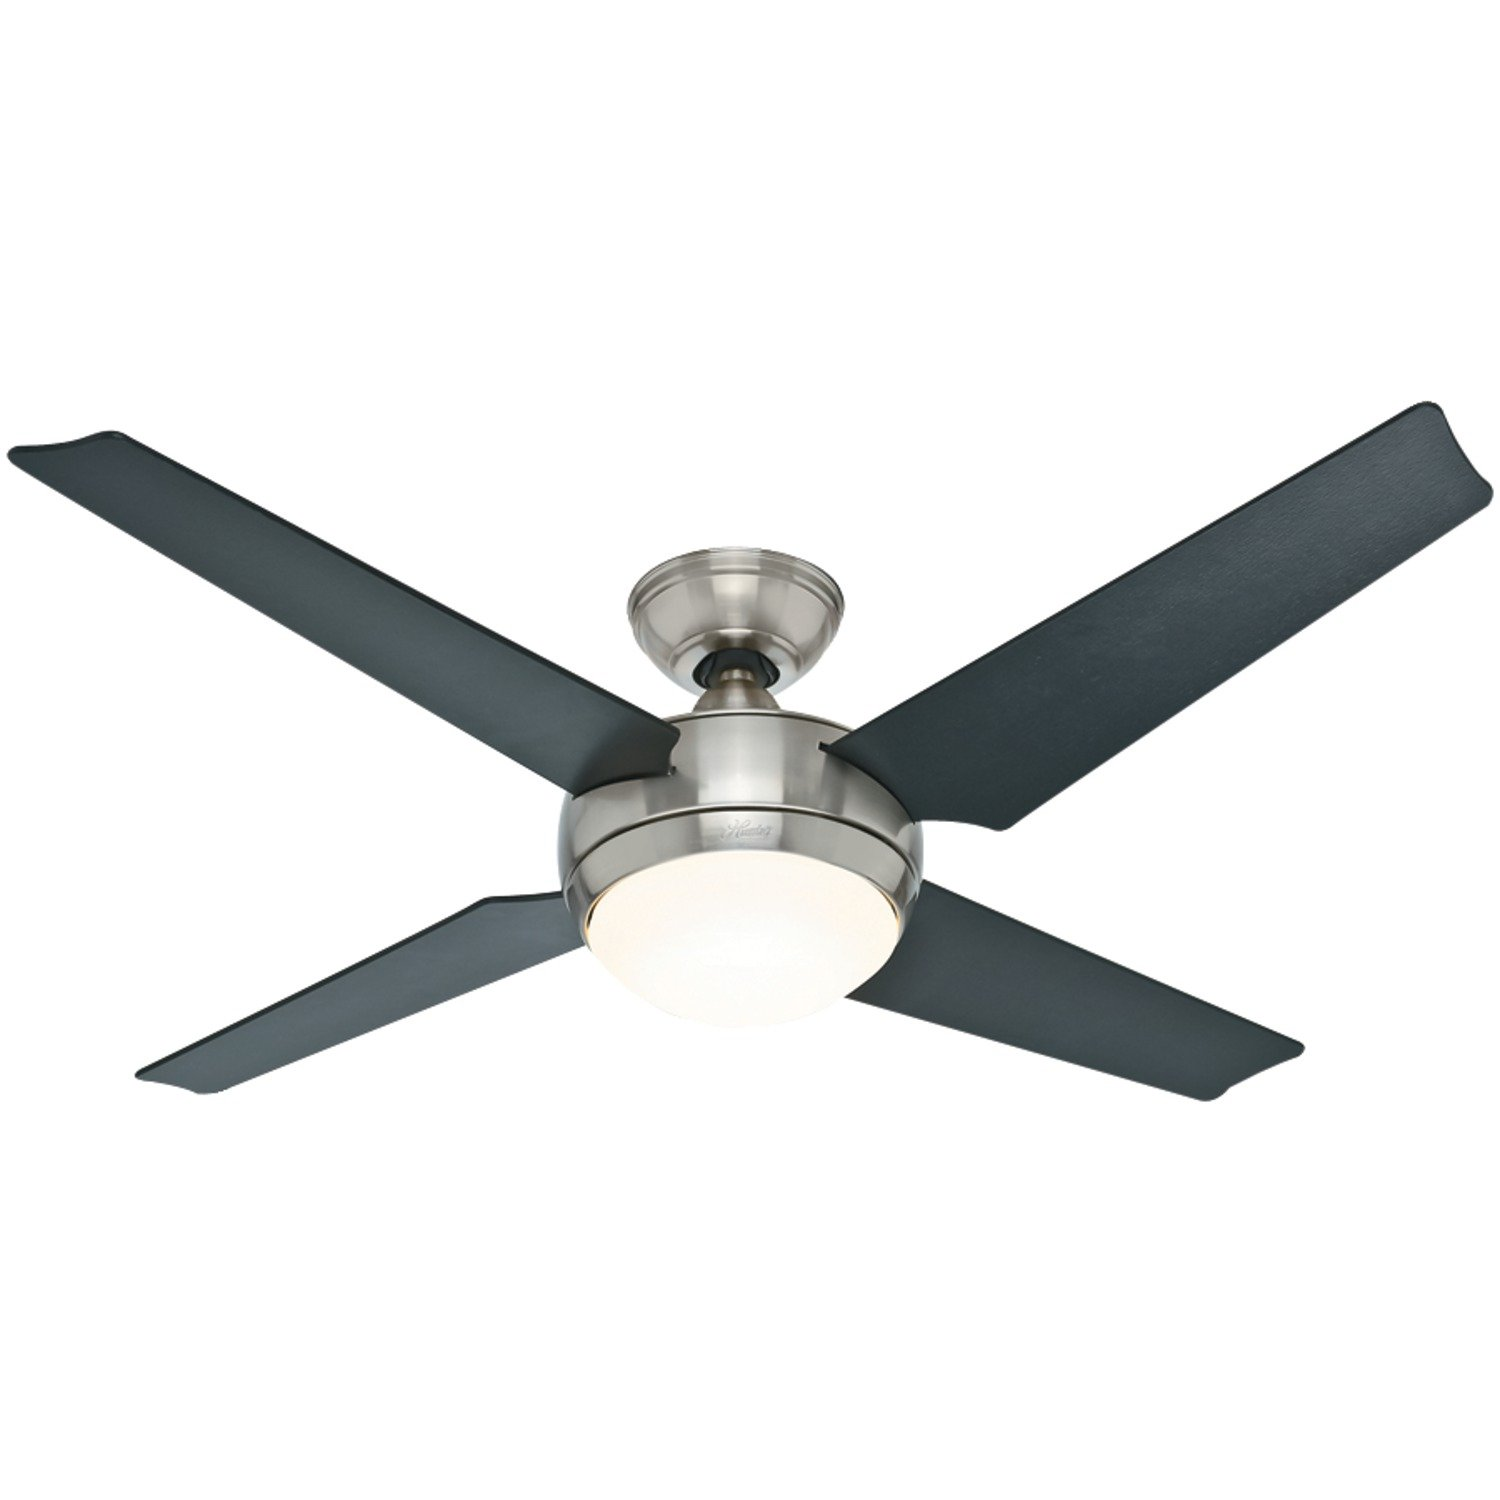 61e4%2BGGqB%2BL._SL1500_ hunter 59072 sonic 52 inch brushed nickel ceiling fan with four  at suagrazia.org